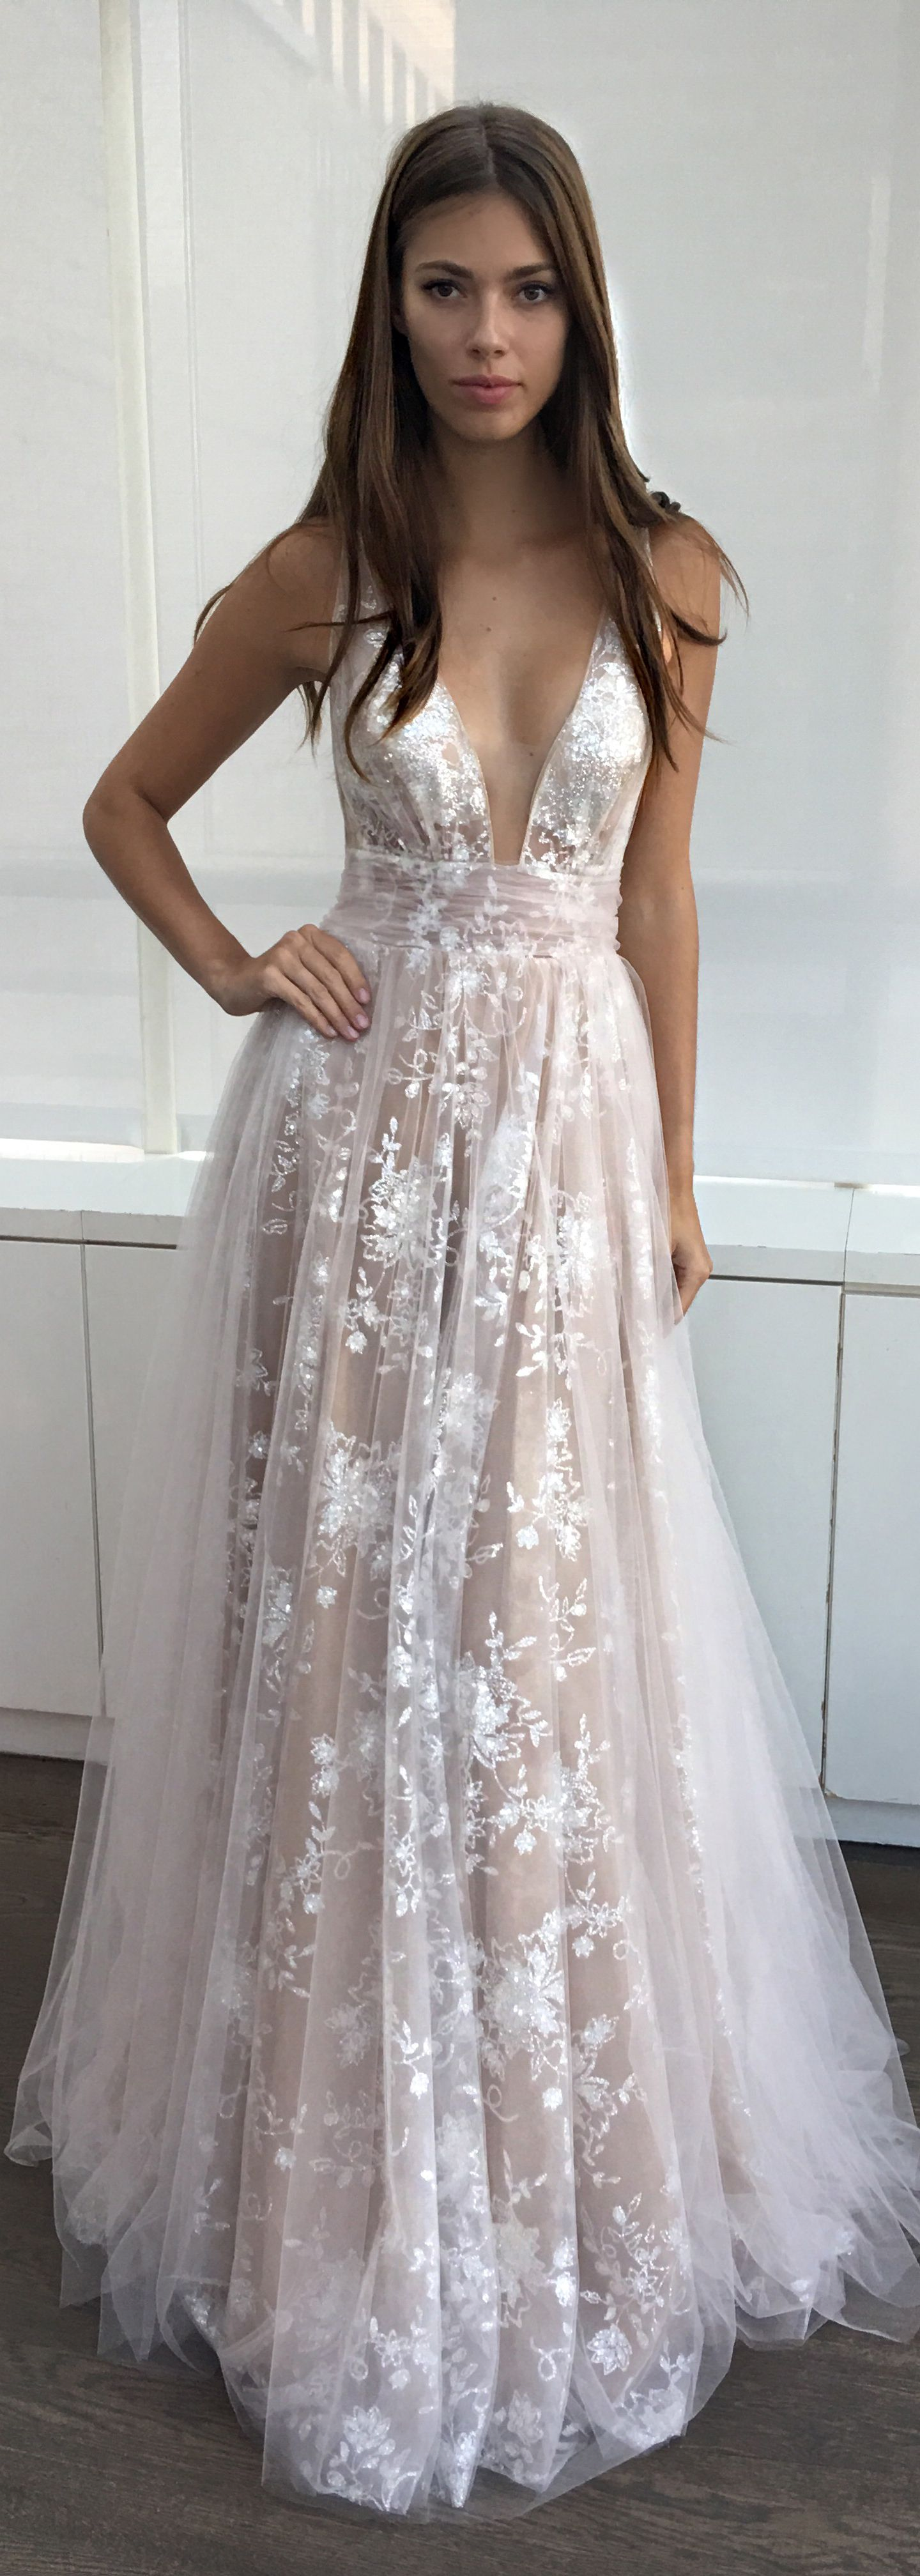 The Fit Of This Bertabridal Is So Feminine And Pretty